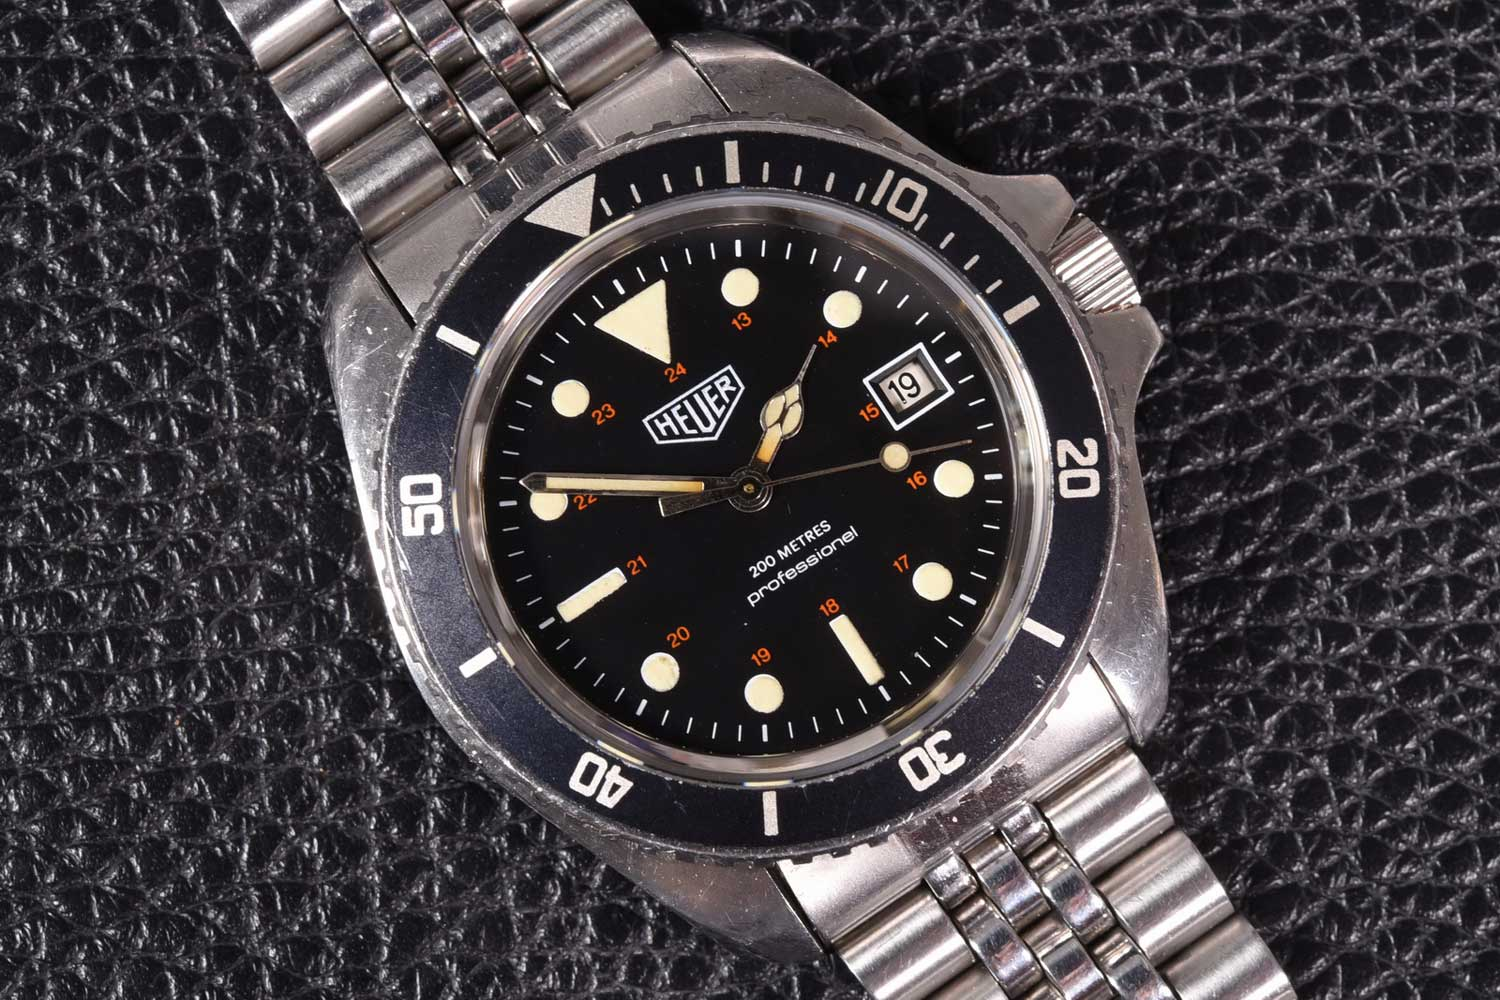 The Reference 844 dive watch from 1978. (Image : Onthedash)